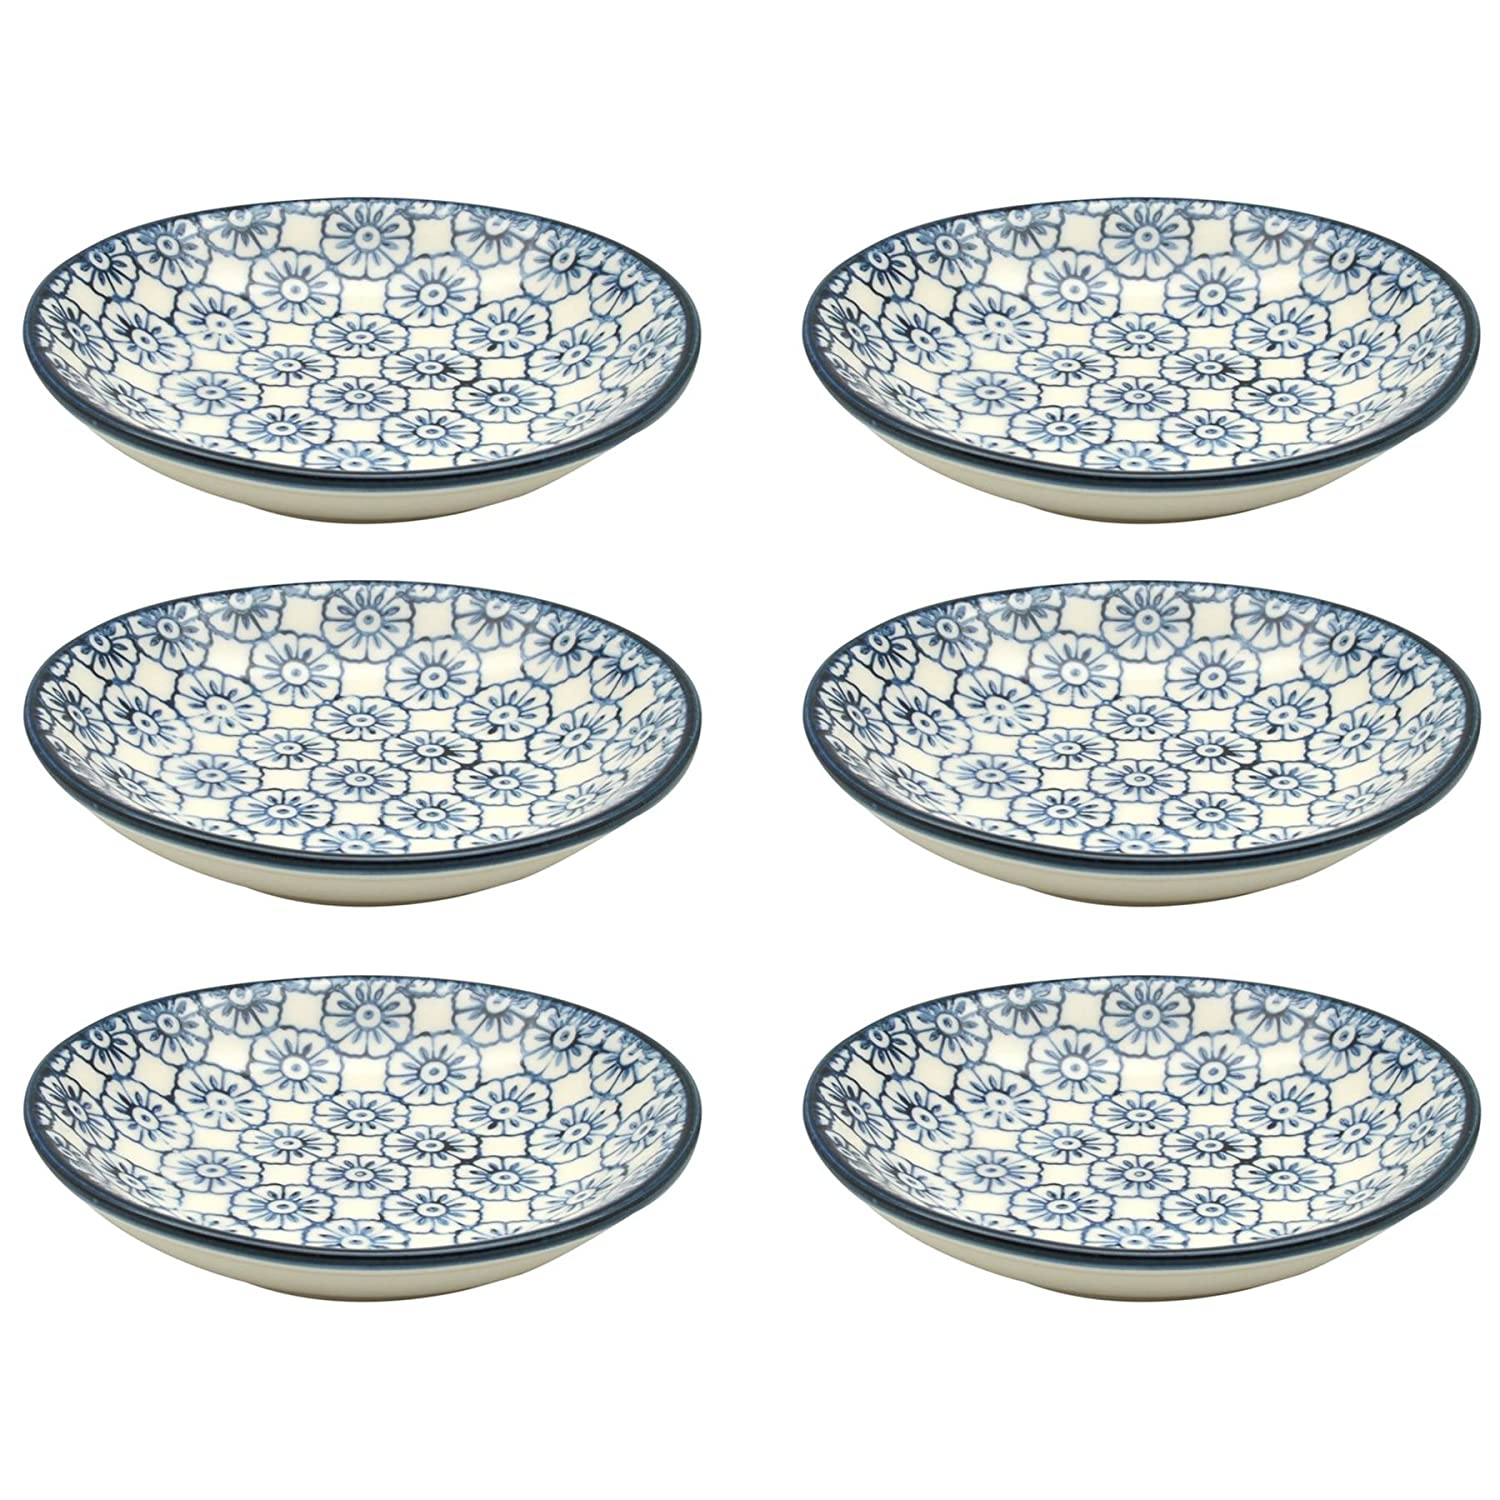 Small Patterned Rice / Soy Sauce / Olive Oil / Dipping Dish - 101mm - Blue Flower - Box of 6 Nicola Spring